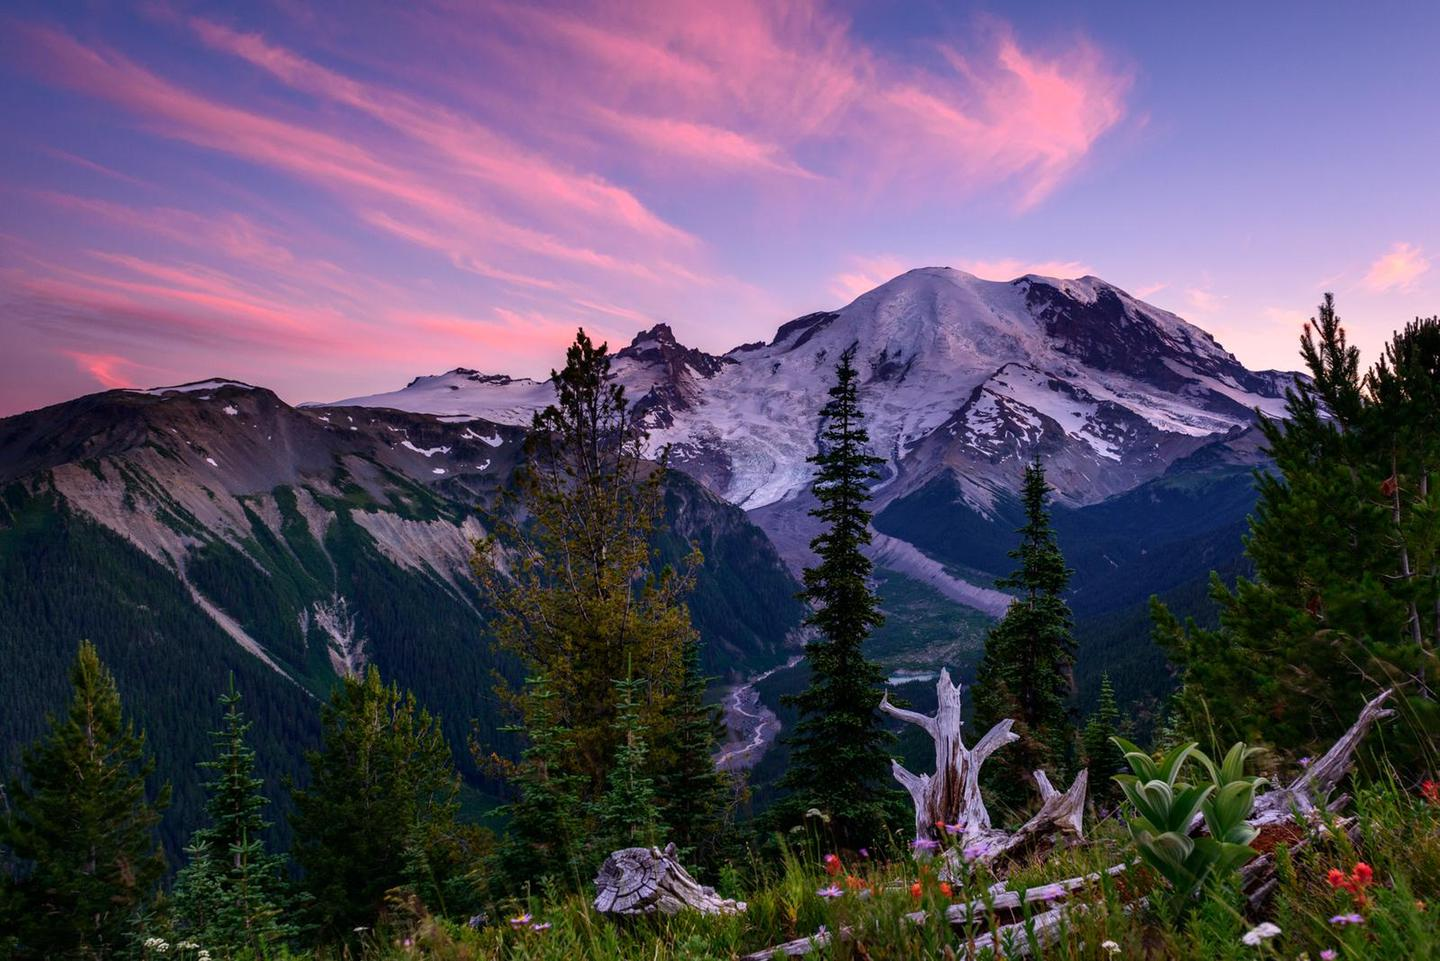 Preview photo of Mount Rainier National Park